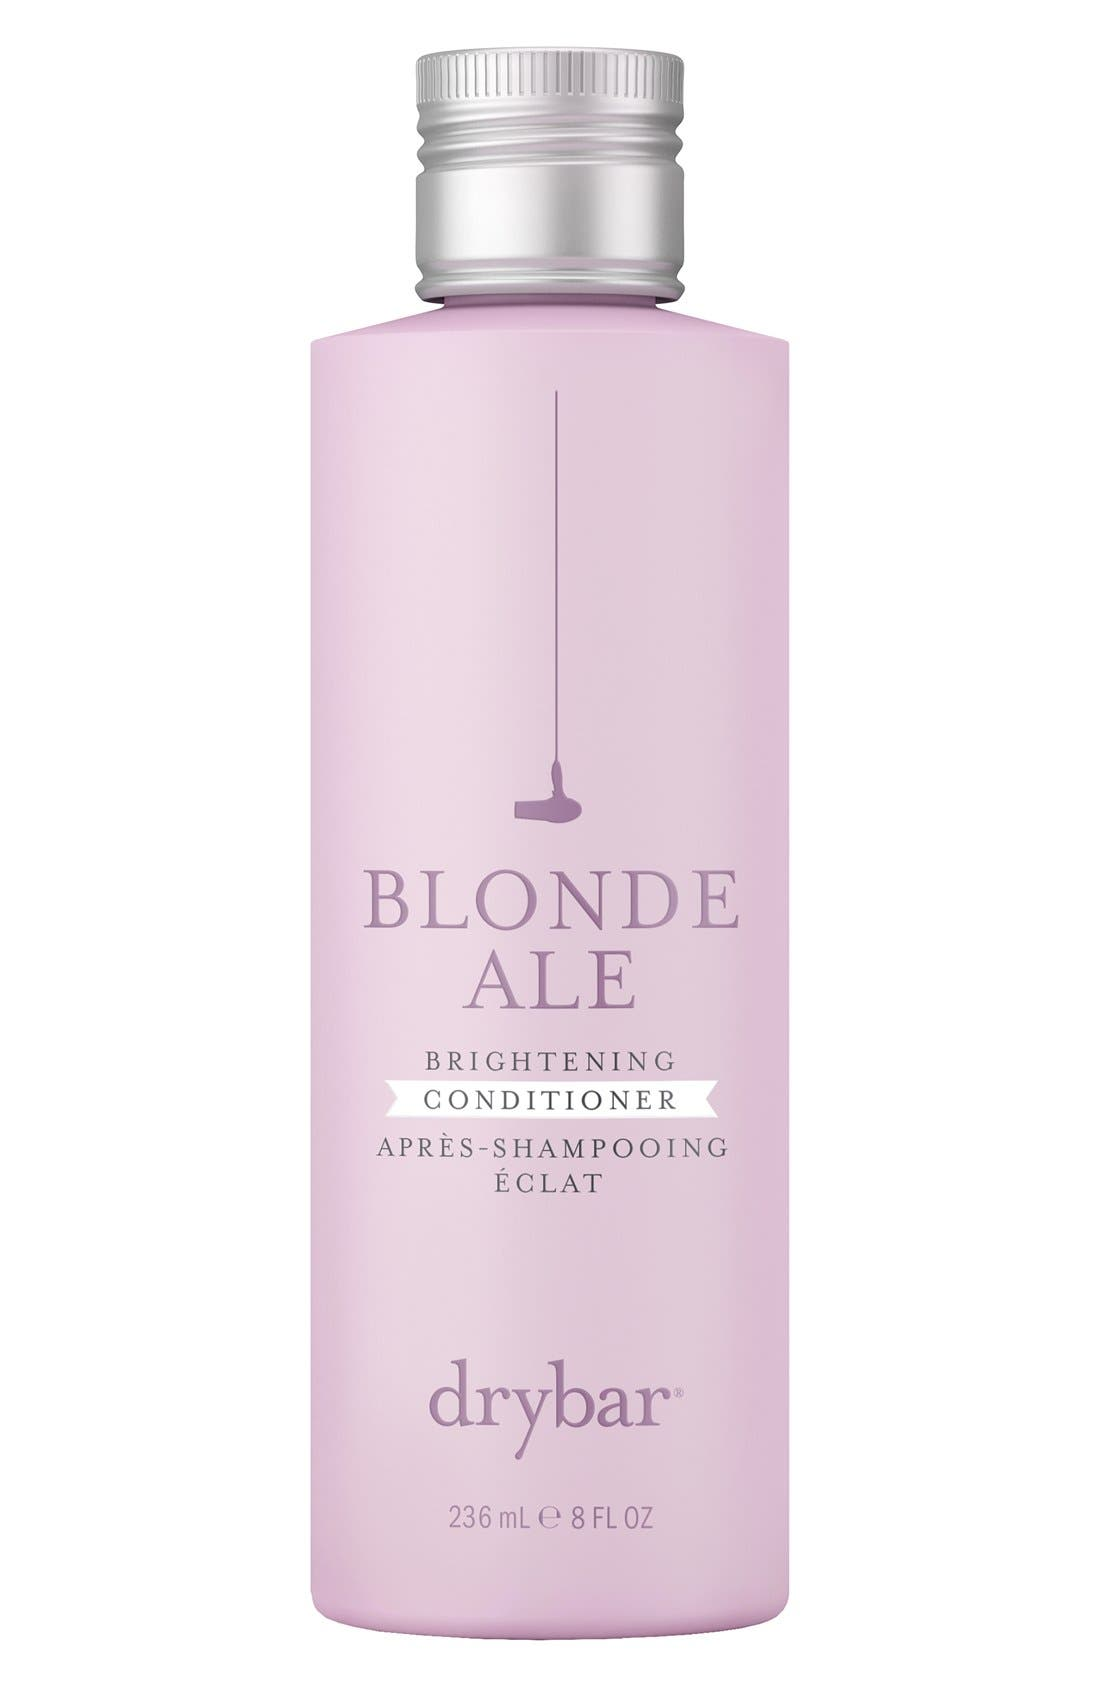 Drybar 'Blonde Ale' Brightening Conditioner